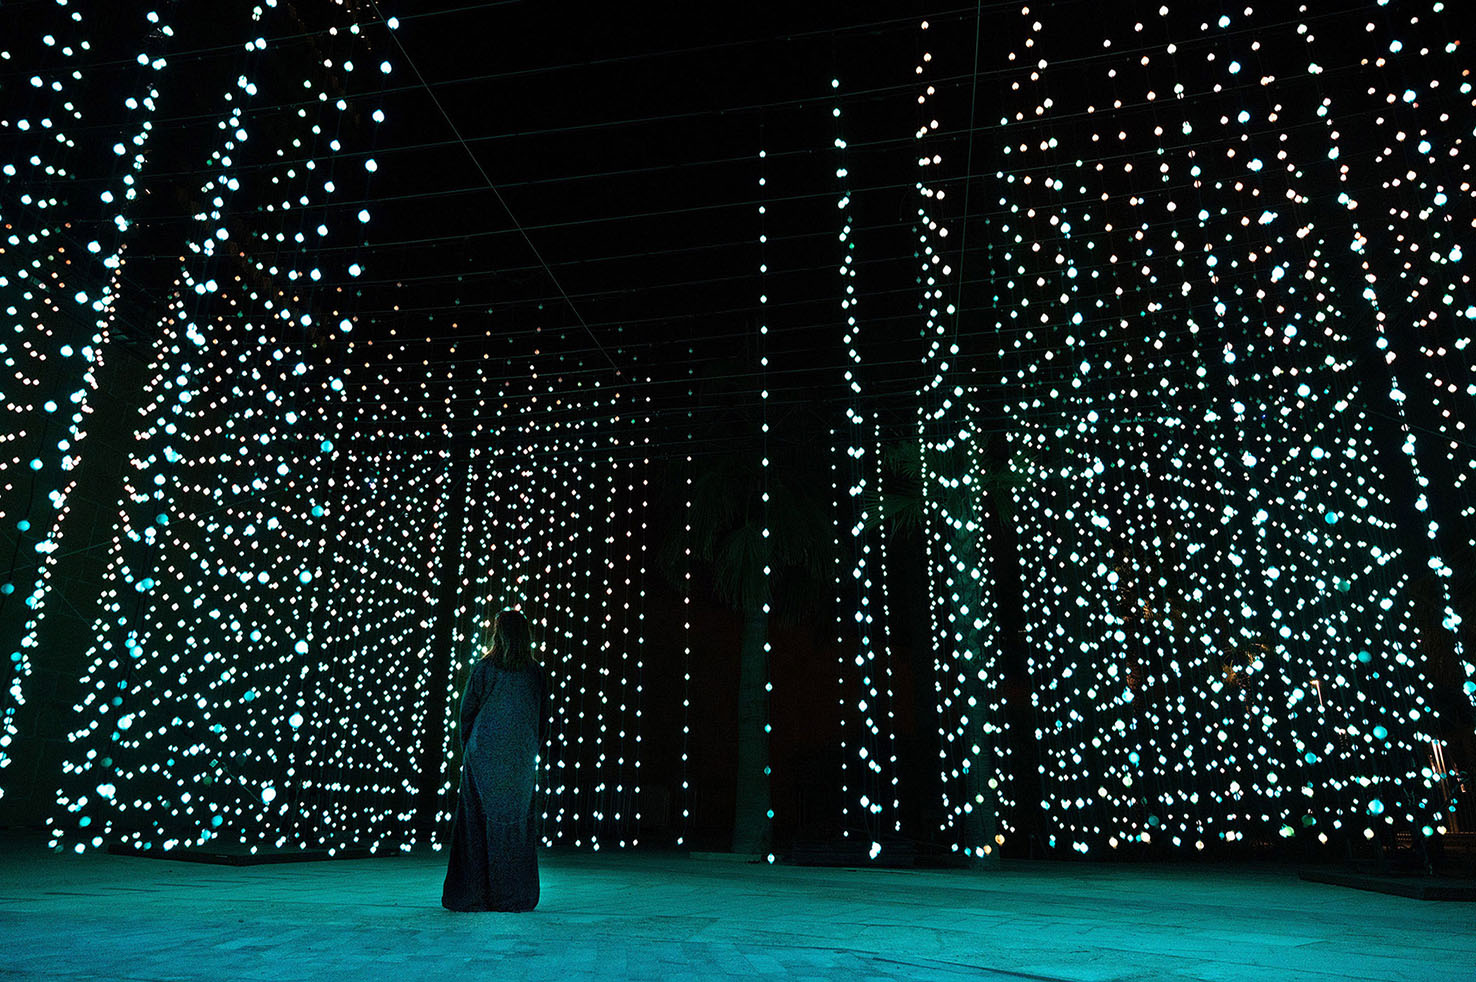 The Noor Riyadh festival will see the Saudi capital light up for 17 days with international artworks. (Supplied)